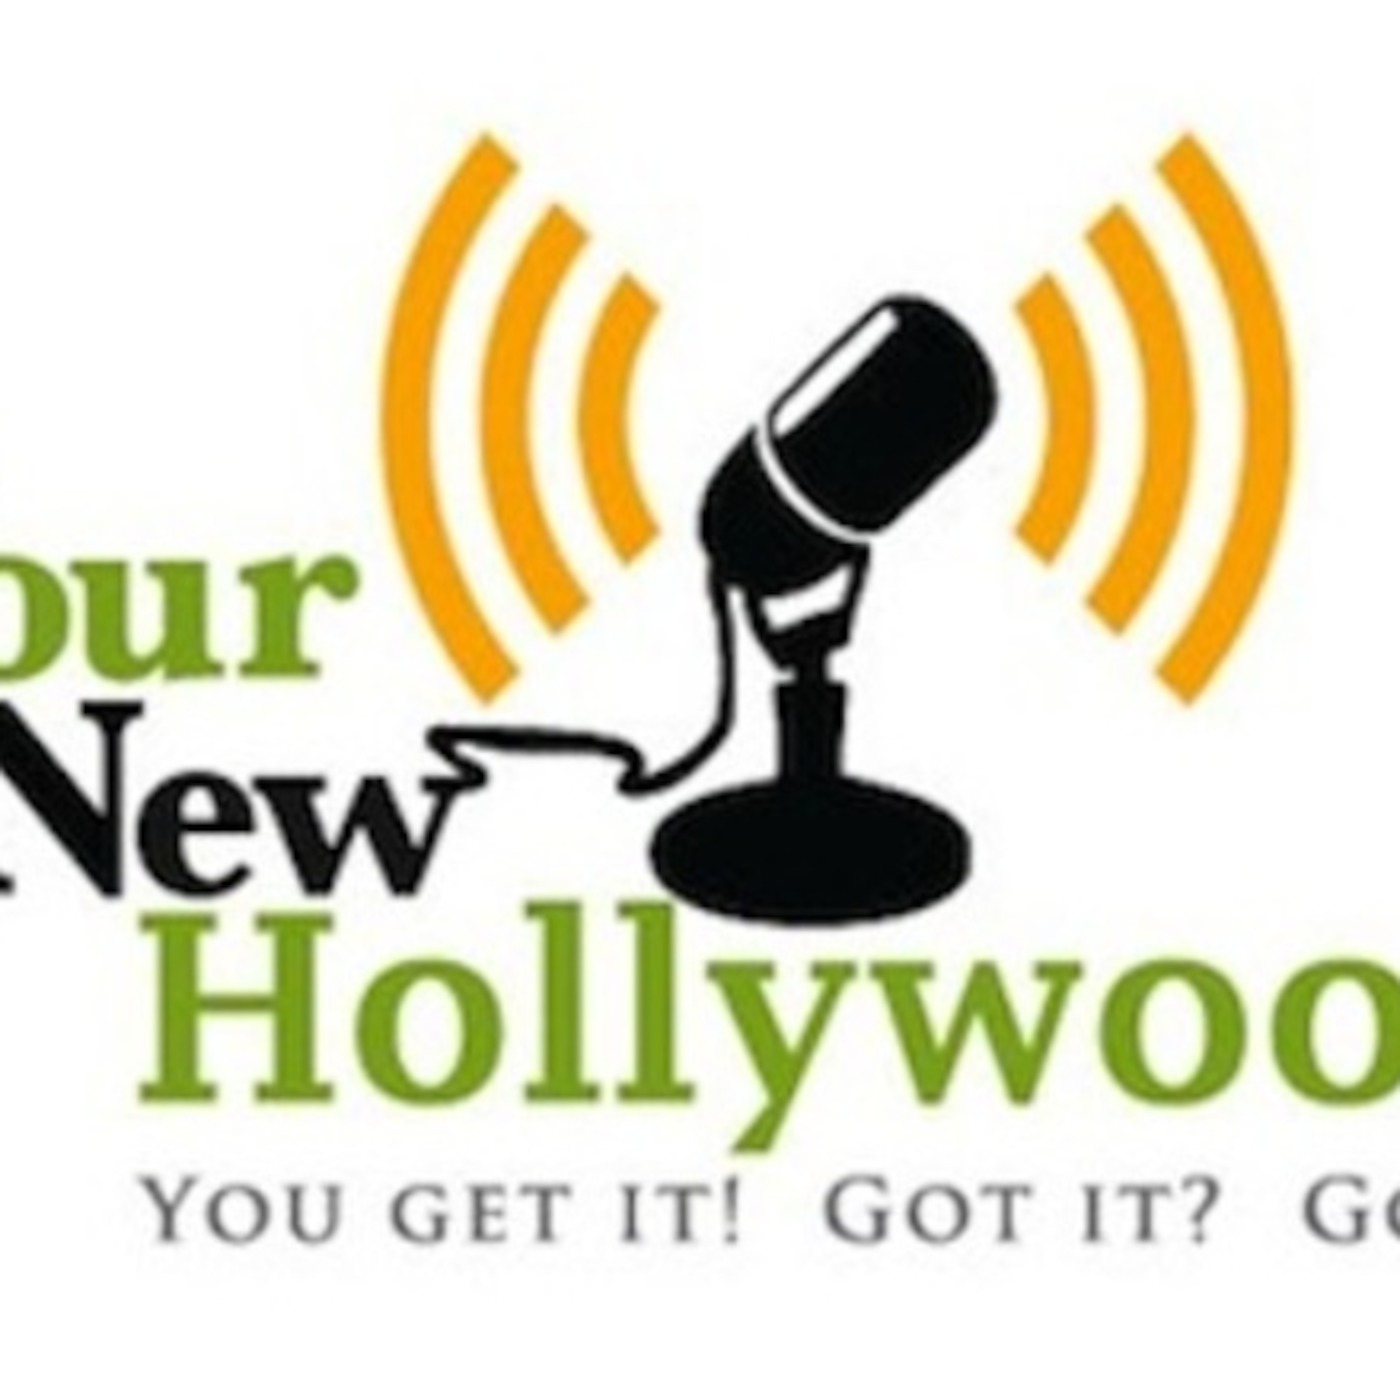 Your New Hollywood: You Get It! Got It? Good